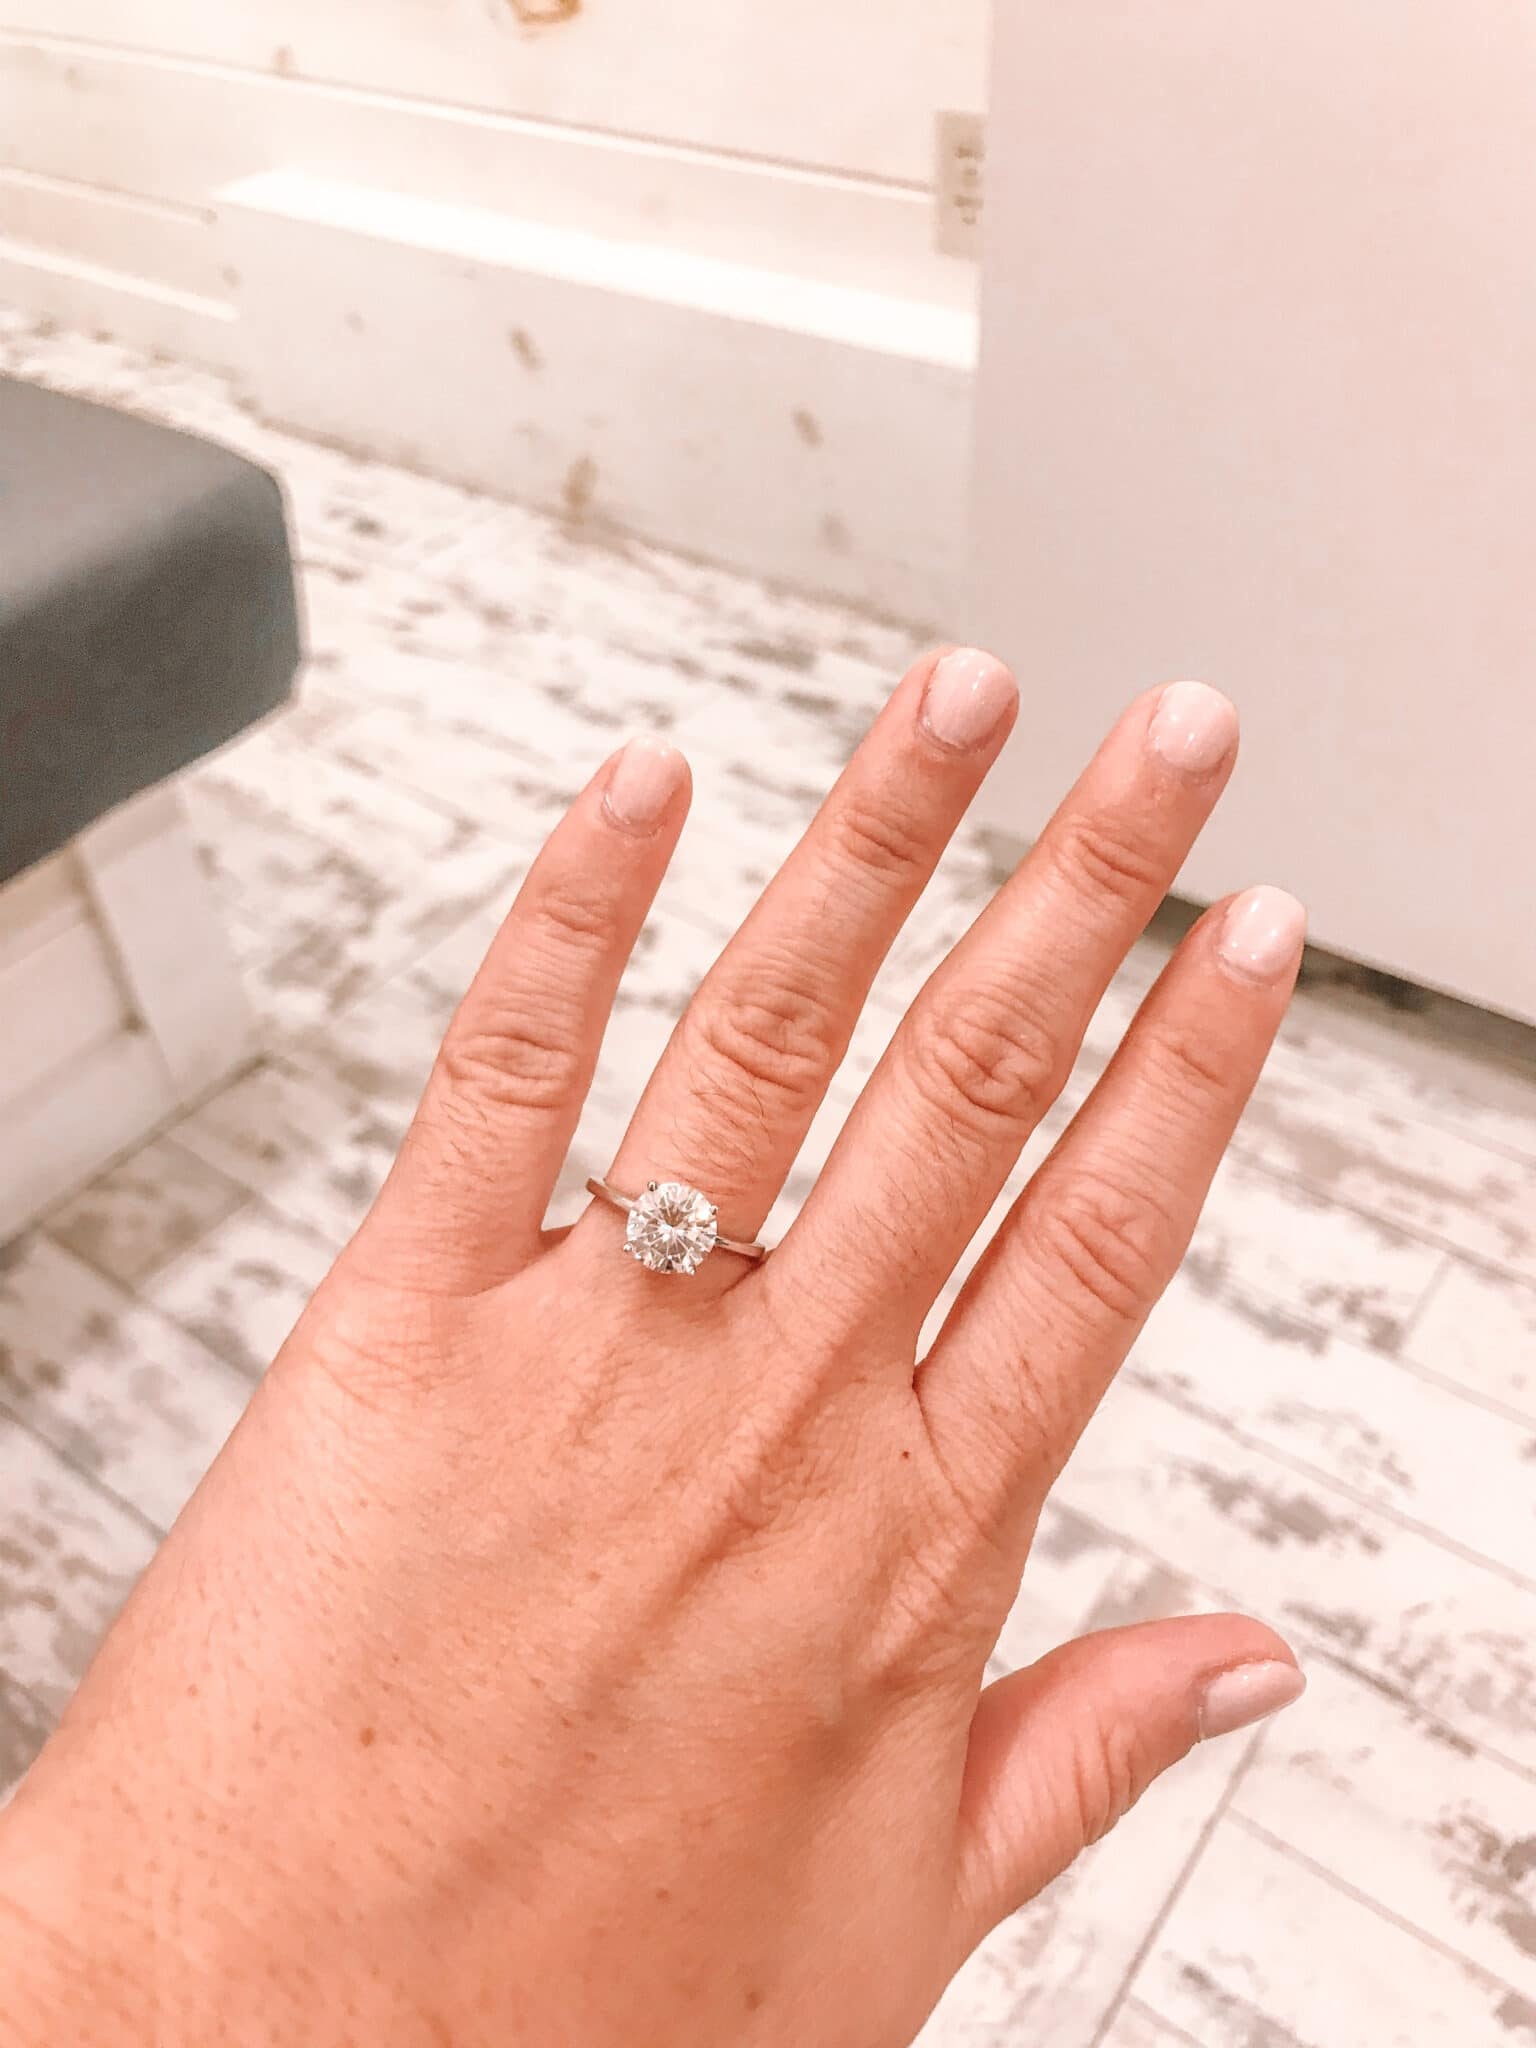 solitaire engagement ring from airbnb marriage proposal